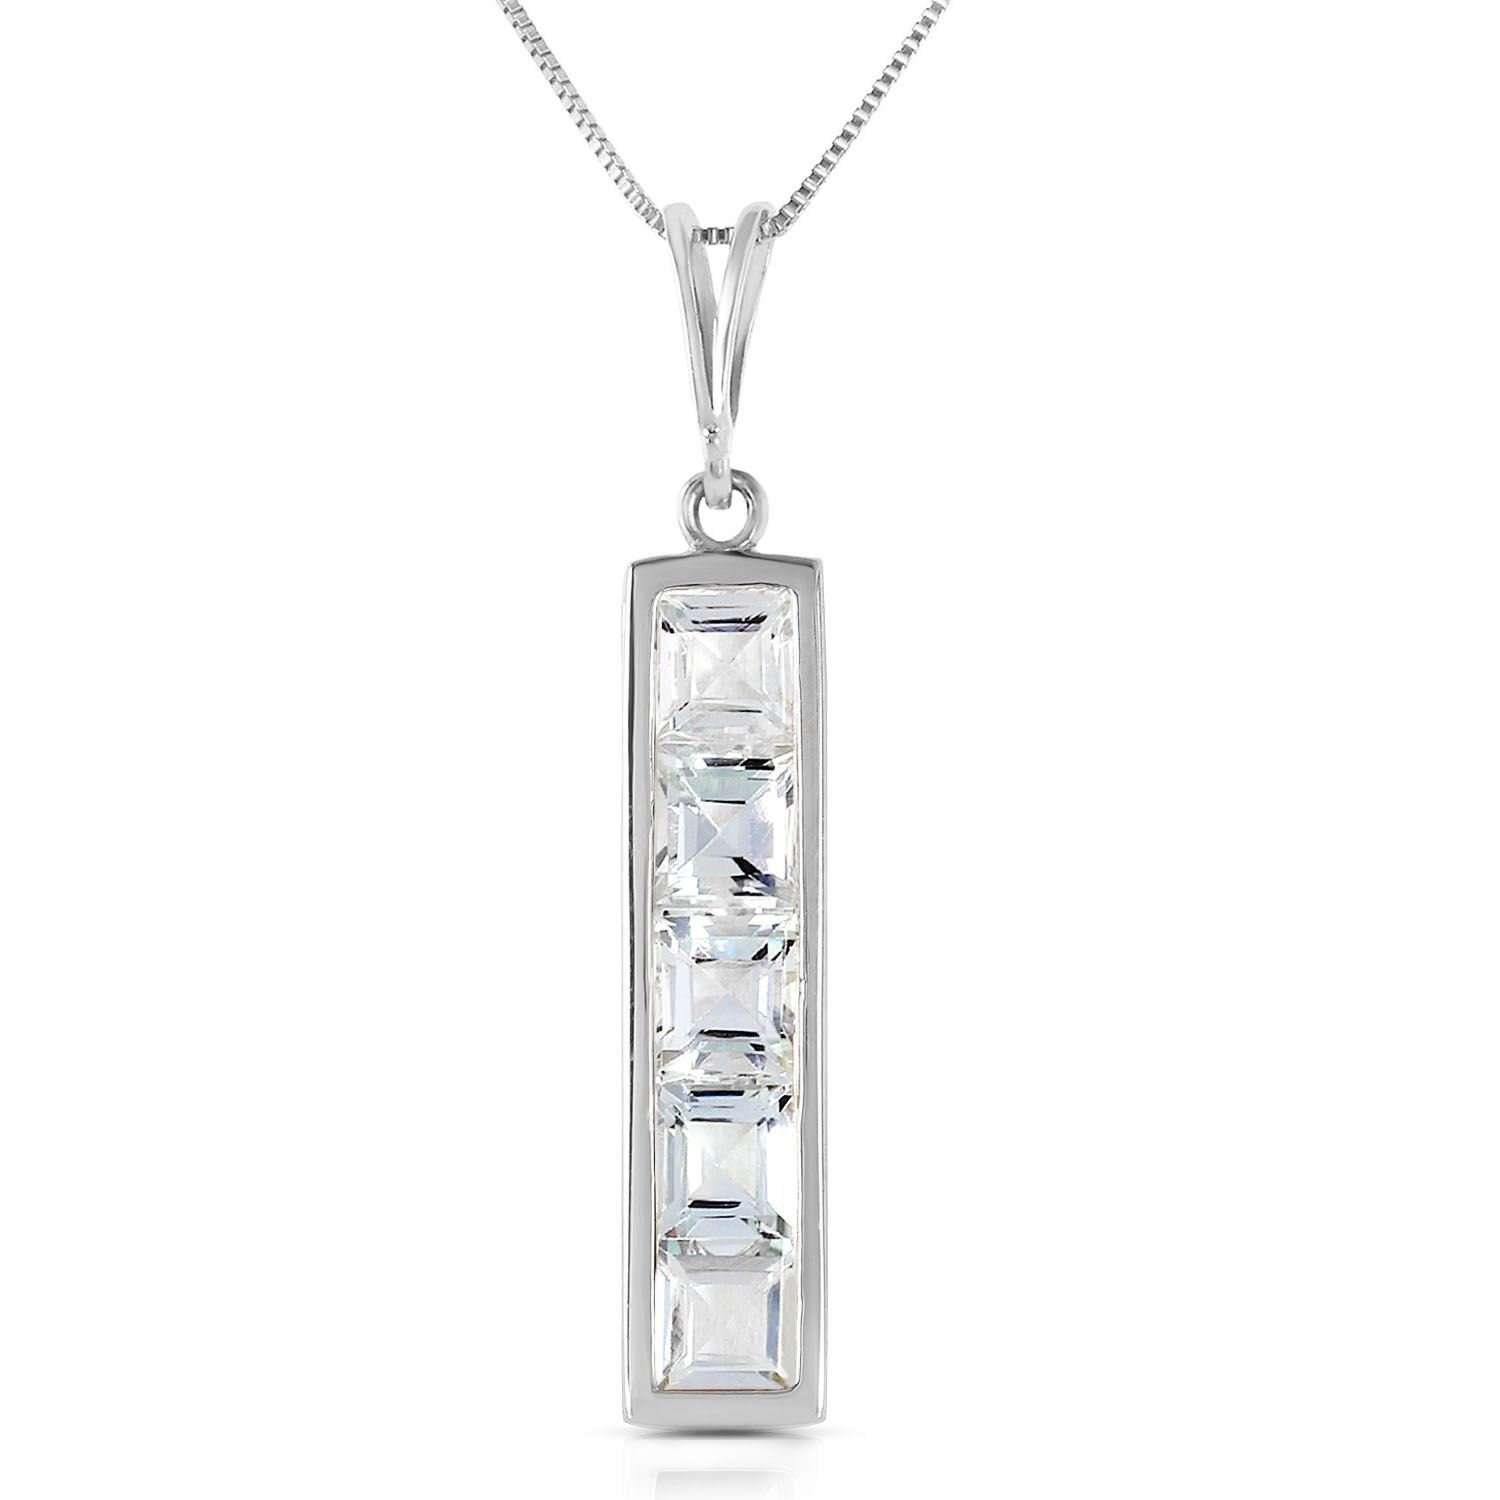 ALARRI 2.25 Carat 14K Solid White Gold Labor Of Love Aquamarine Necklace with 22 Inch Chain Length